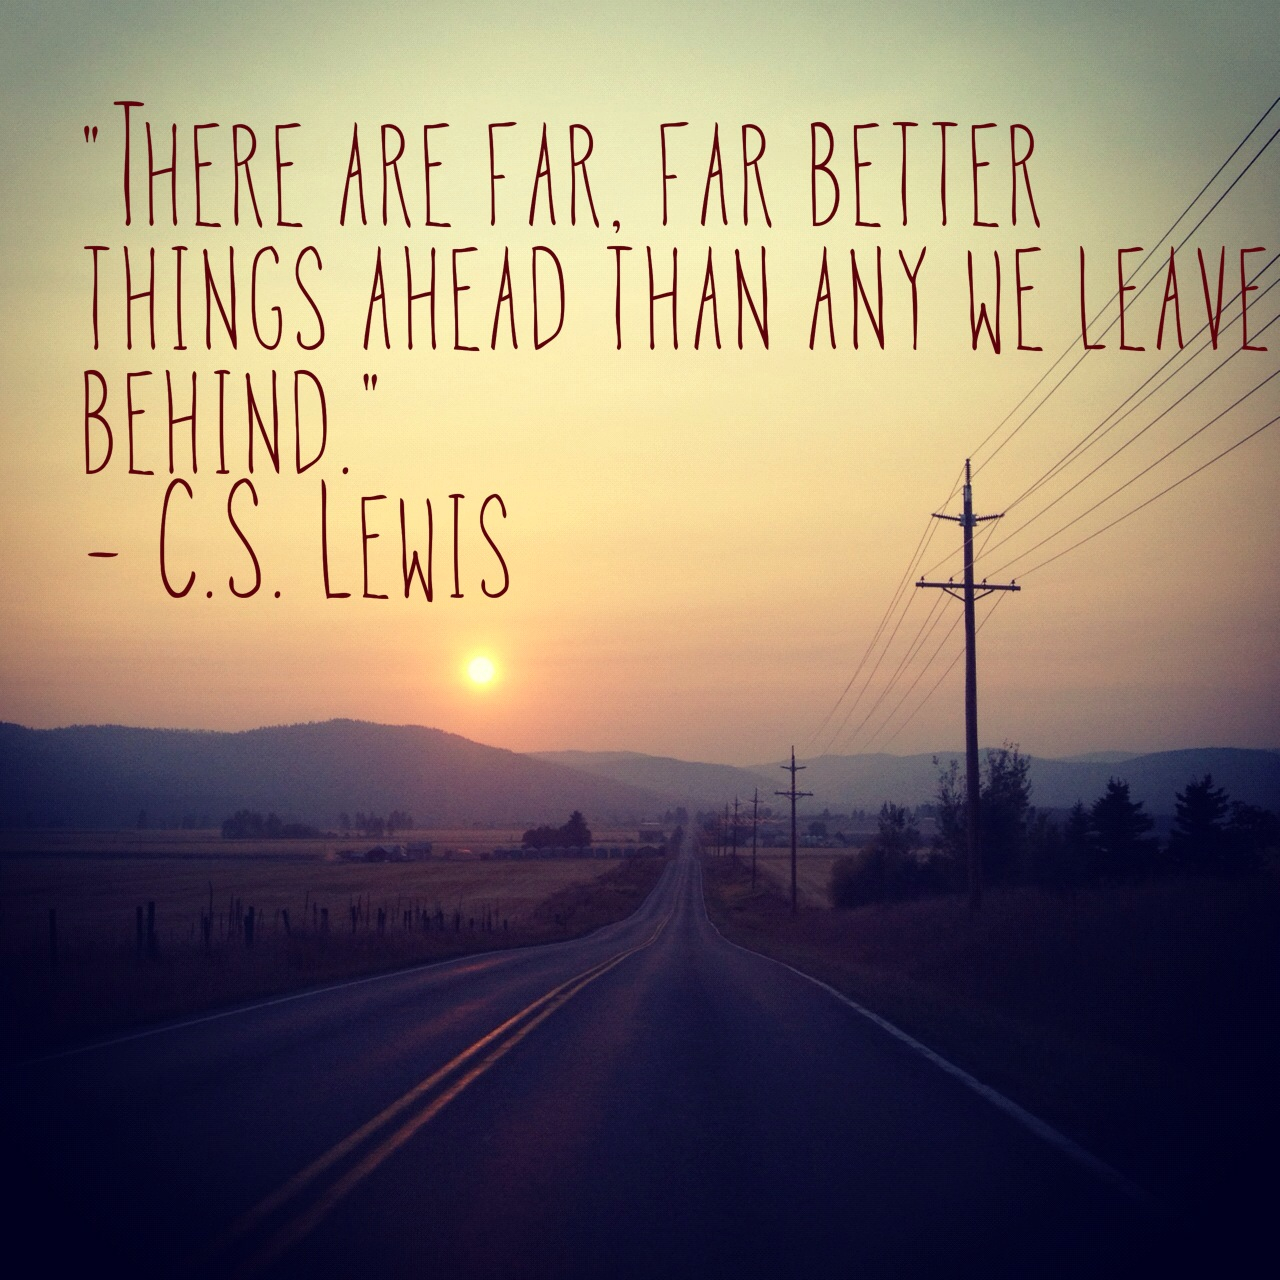 Tumblr Pictures And Quotes Cs Lewis Wallpaperjpg 1280x1280